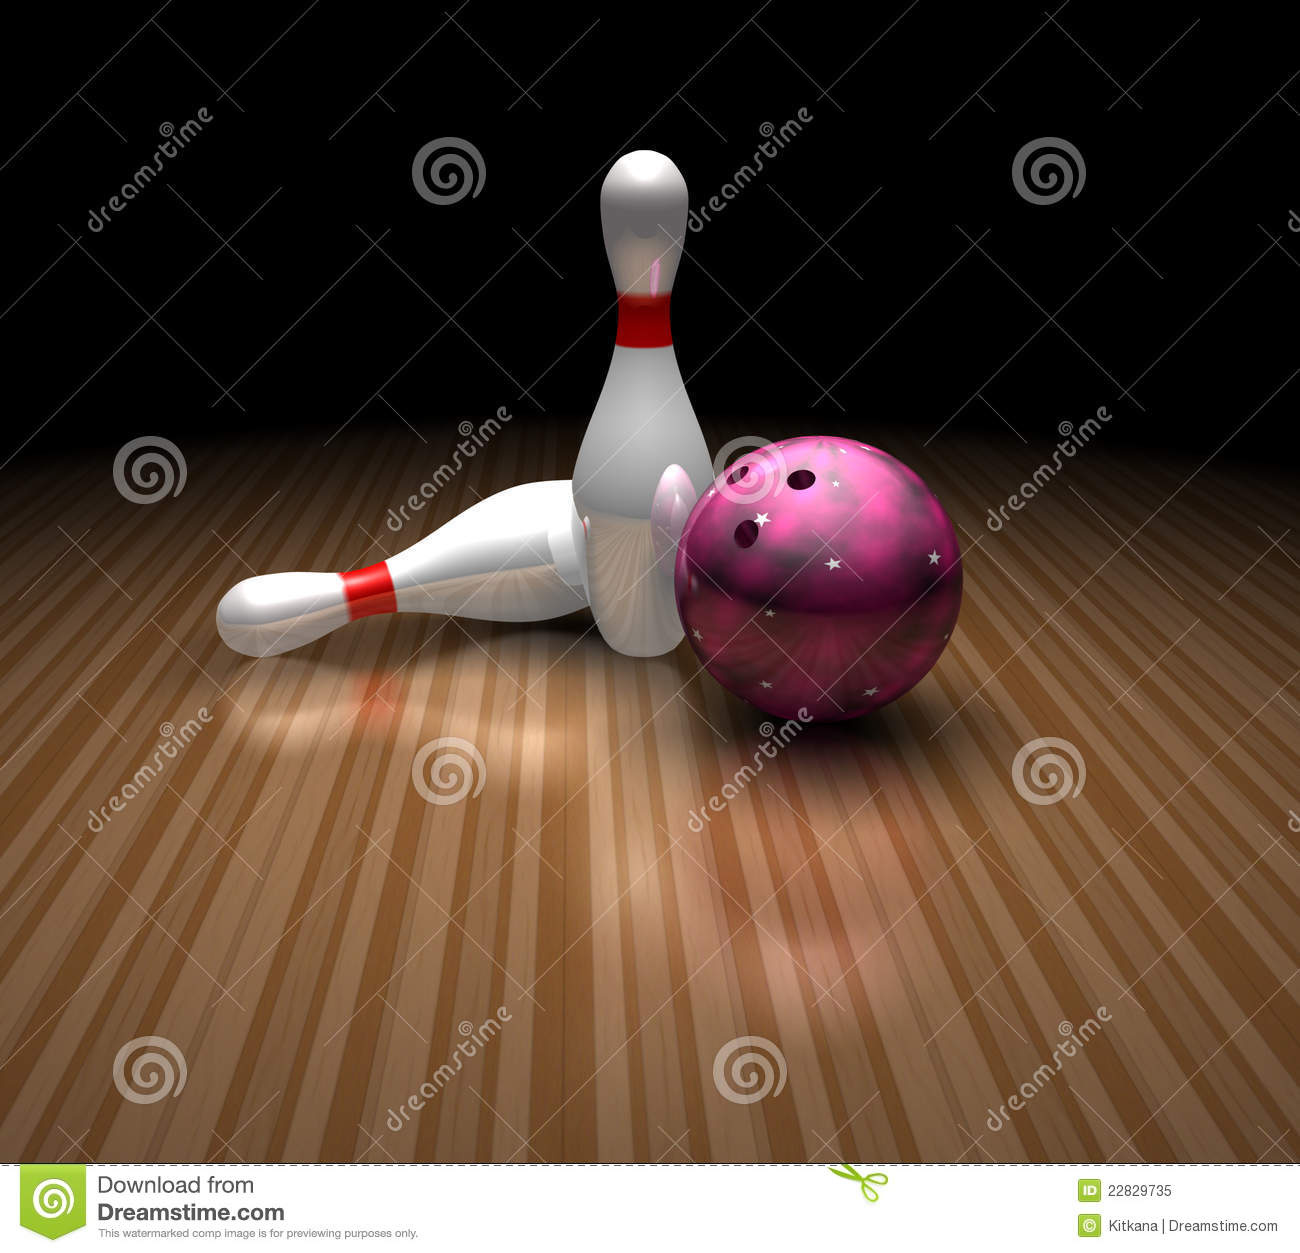 purple bowling ball stands still in a bowling ally with two skittles ...